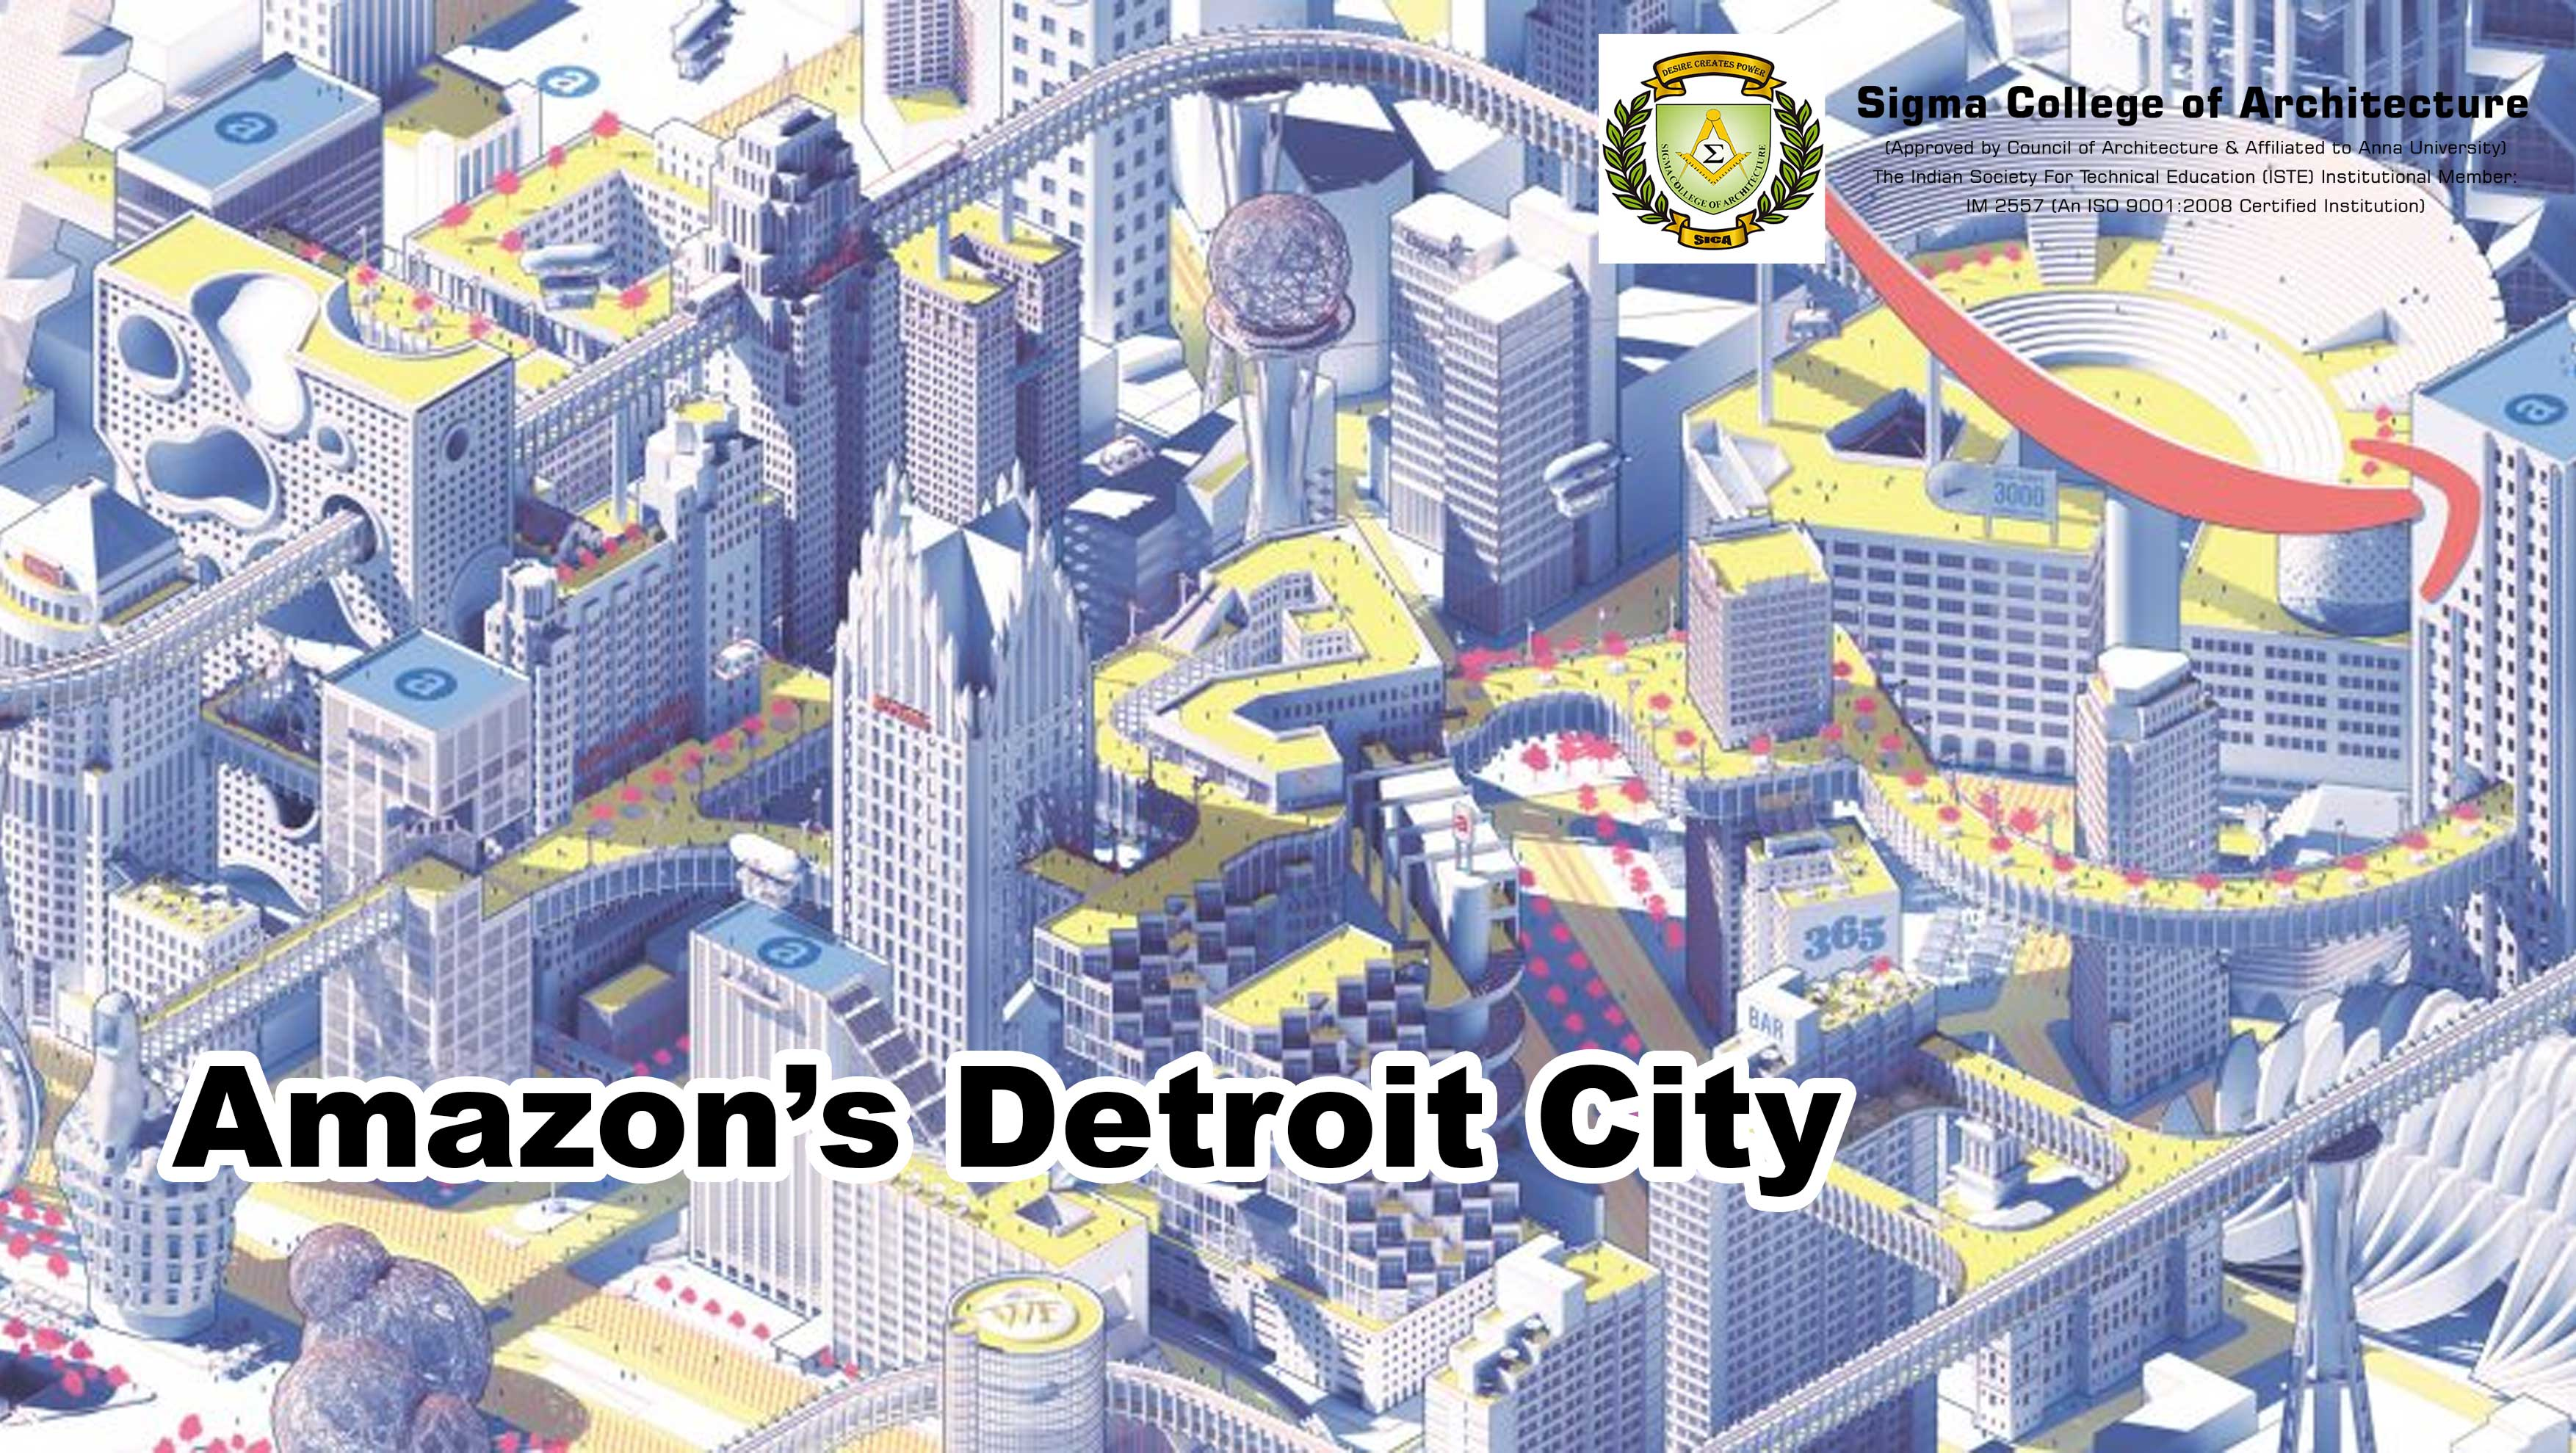 Amazon's Detroit City